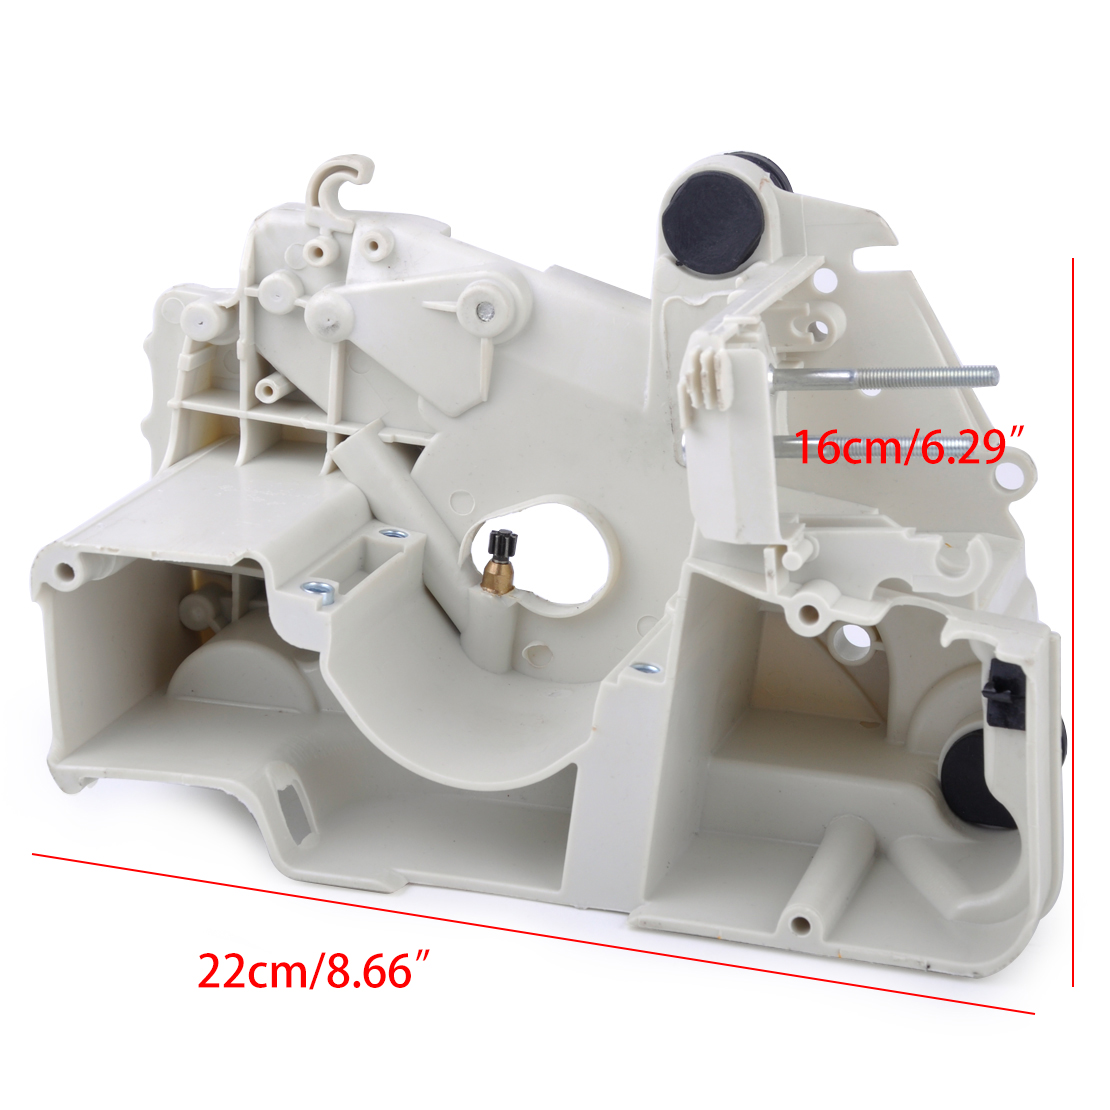 Image 2 - LETAOSK New Crankcase Oil Fuel Gas Tank Engine Housing Assembly Cover Fit For Stihl 017 018 MS170 MS180 Chainsaw Replaces Parts-in Tool Parts from Tools